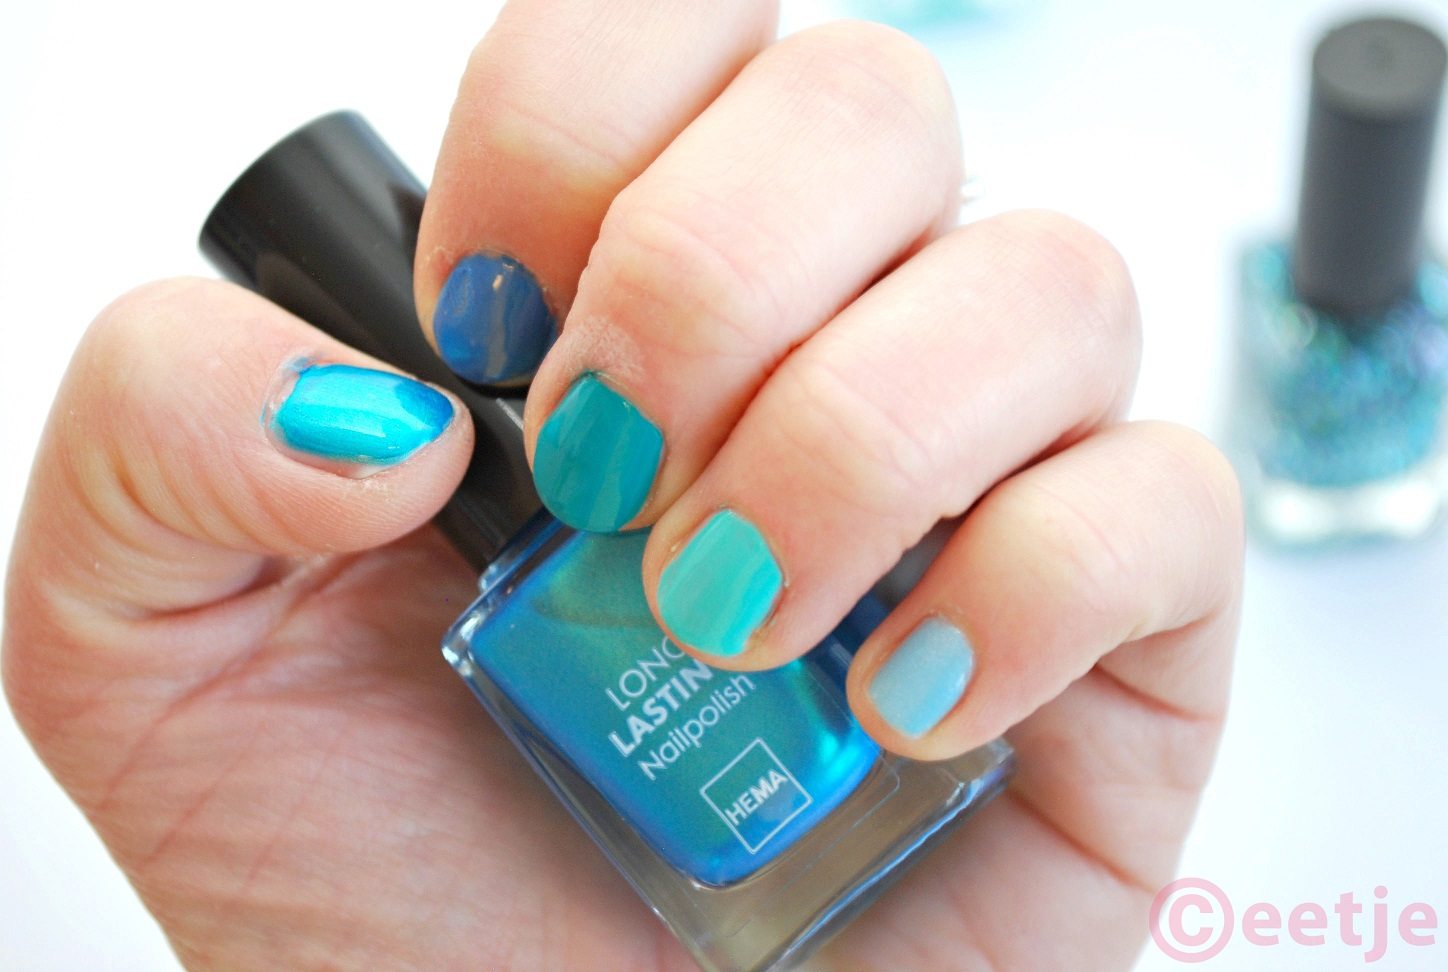 swatch hema nailpolish nagellak ocean blue sparkle